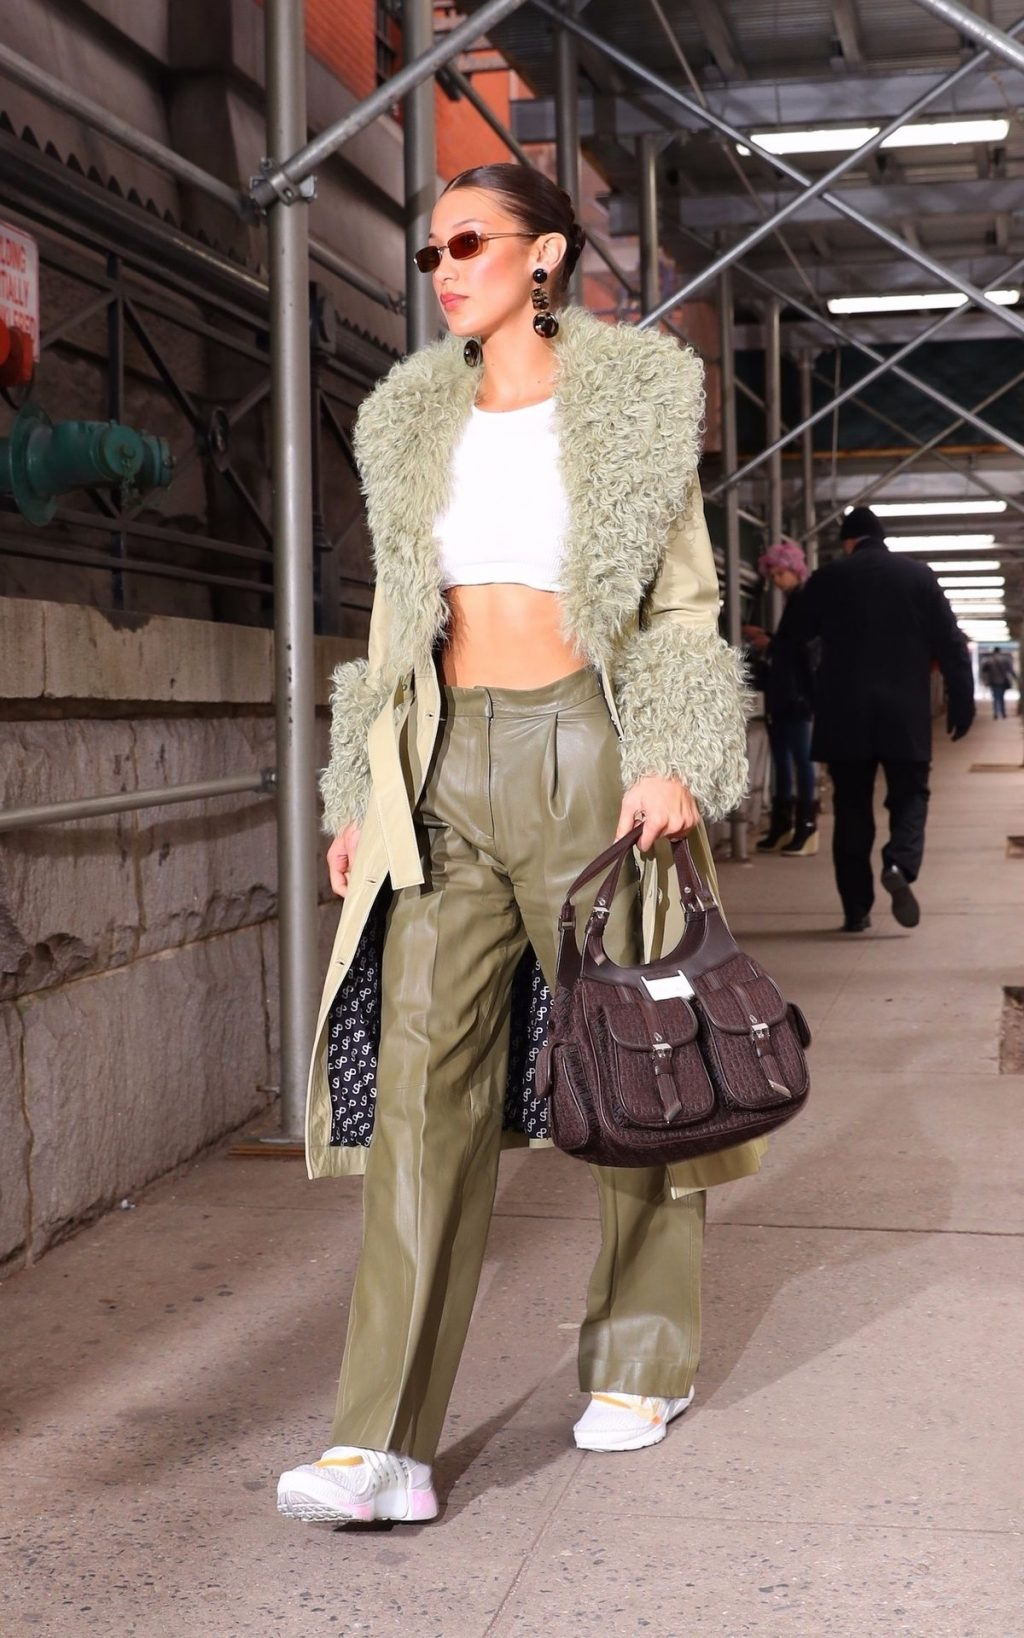 Bella Hadid See through The Fappening Blog 32 1024x1638 - Braless Bella Hadid Arrives at the Park Avenue Armory for the Marc Jacobs Fashion Show (59 Photos)